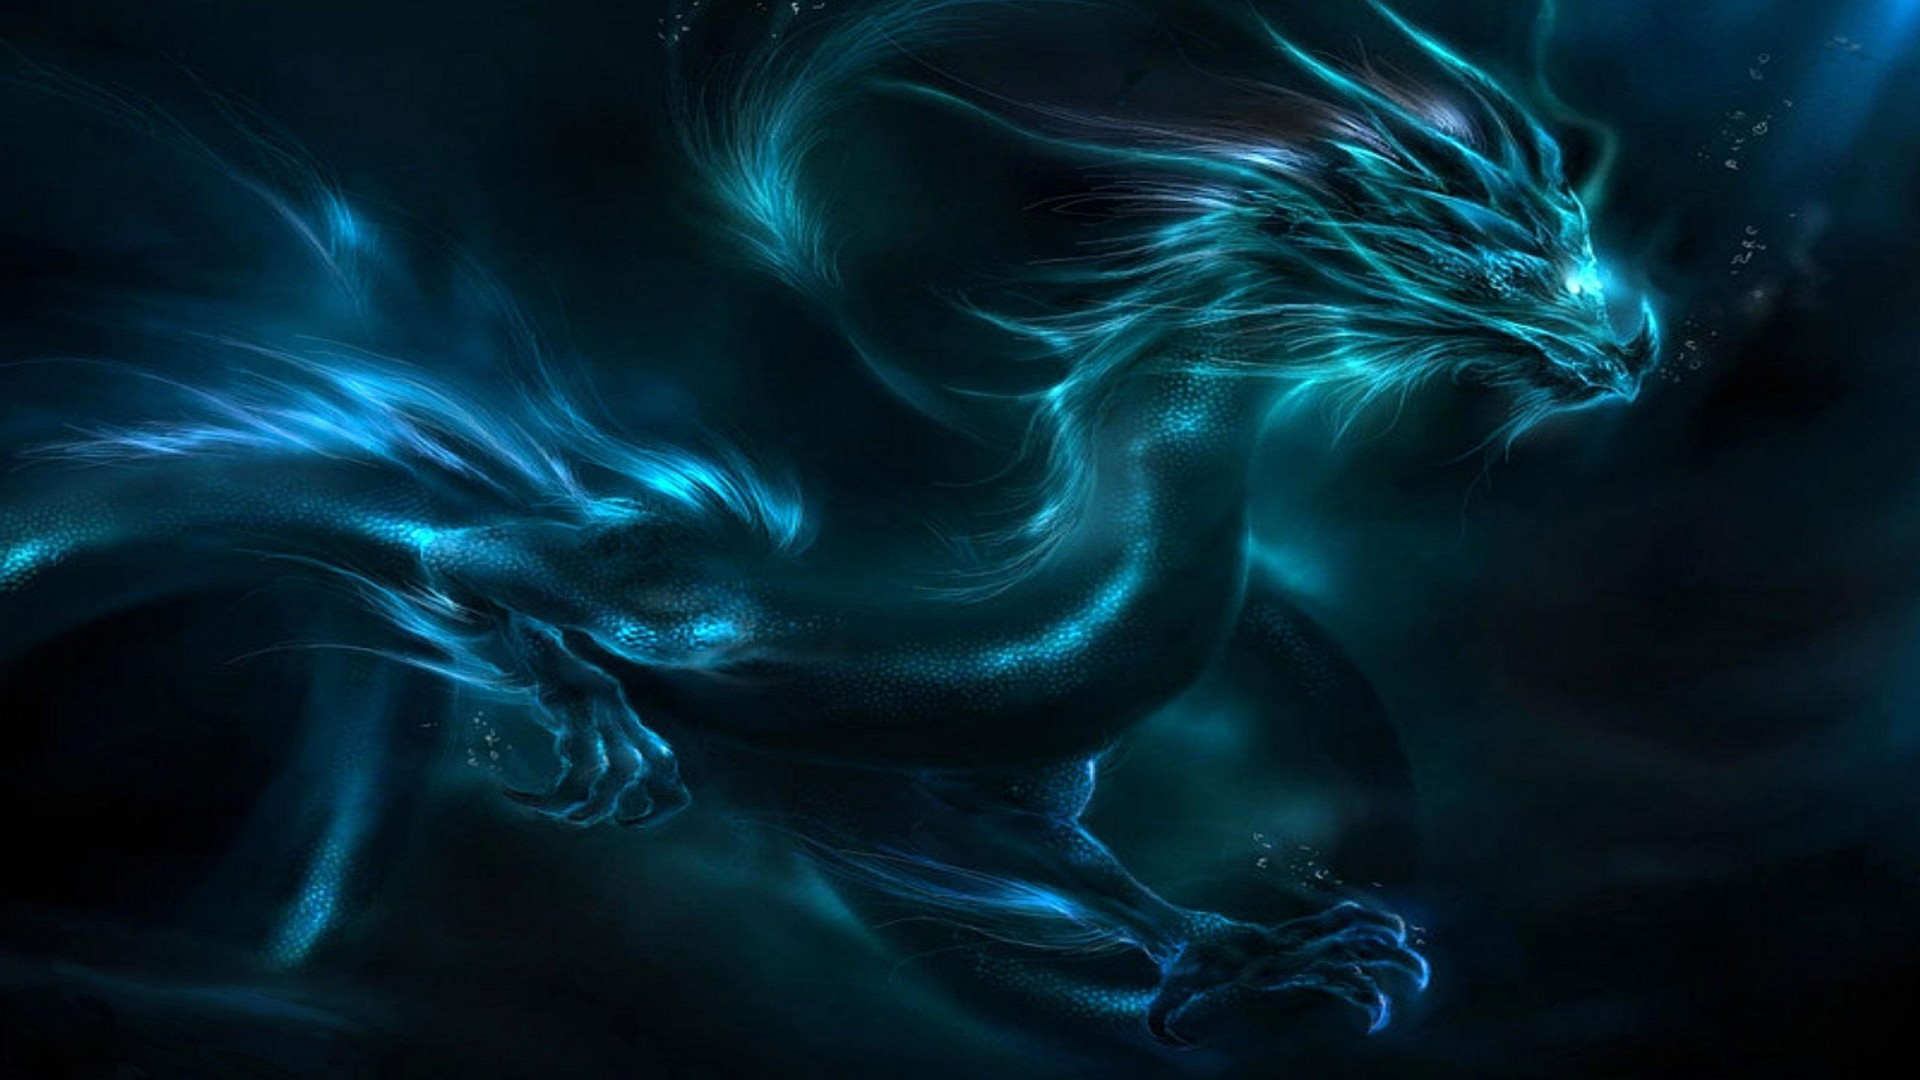 Dragon wallpapers hd download free pixelstalk net - Dragon wallpaper 3d ...